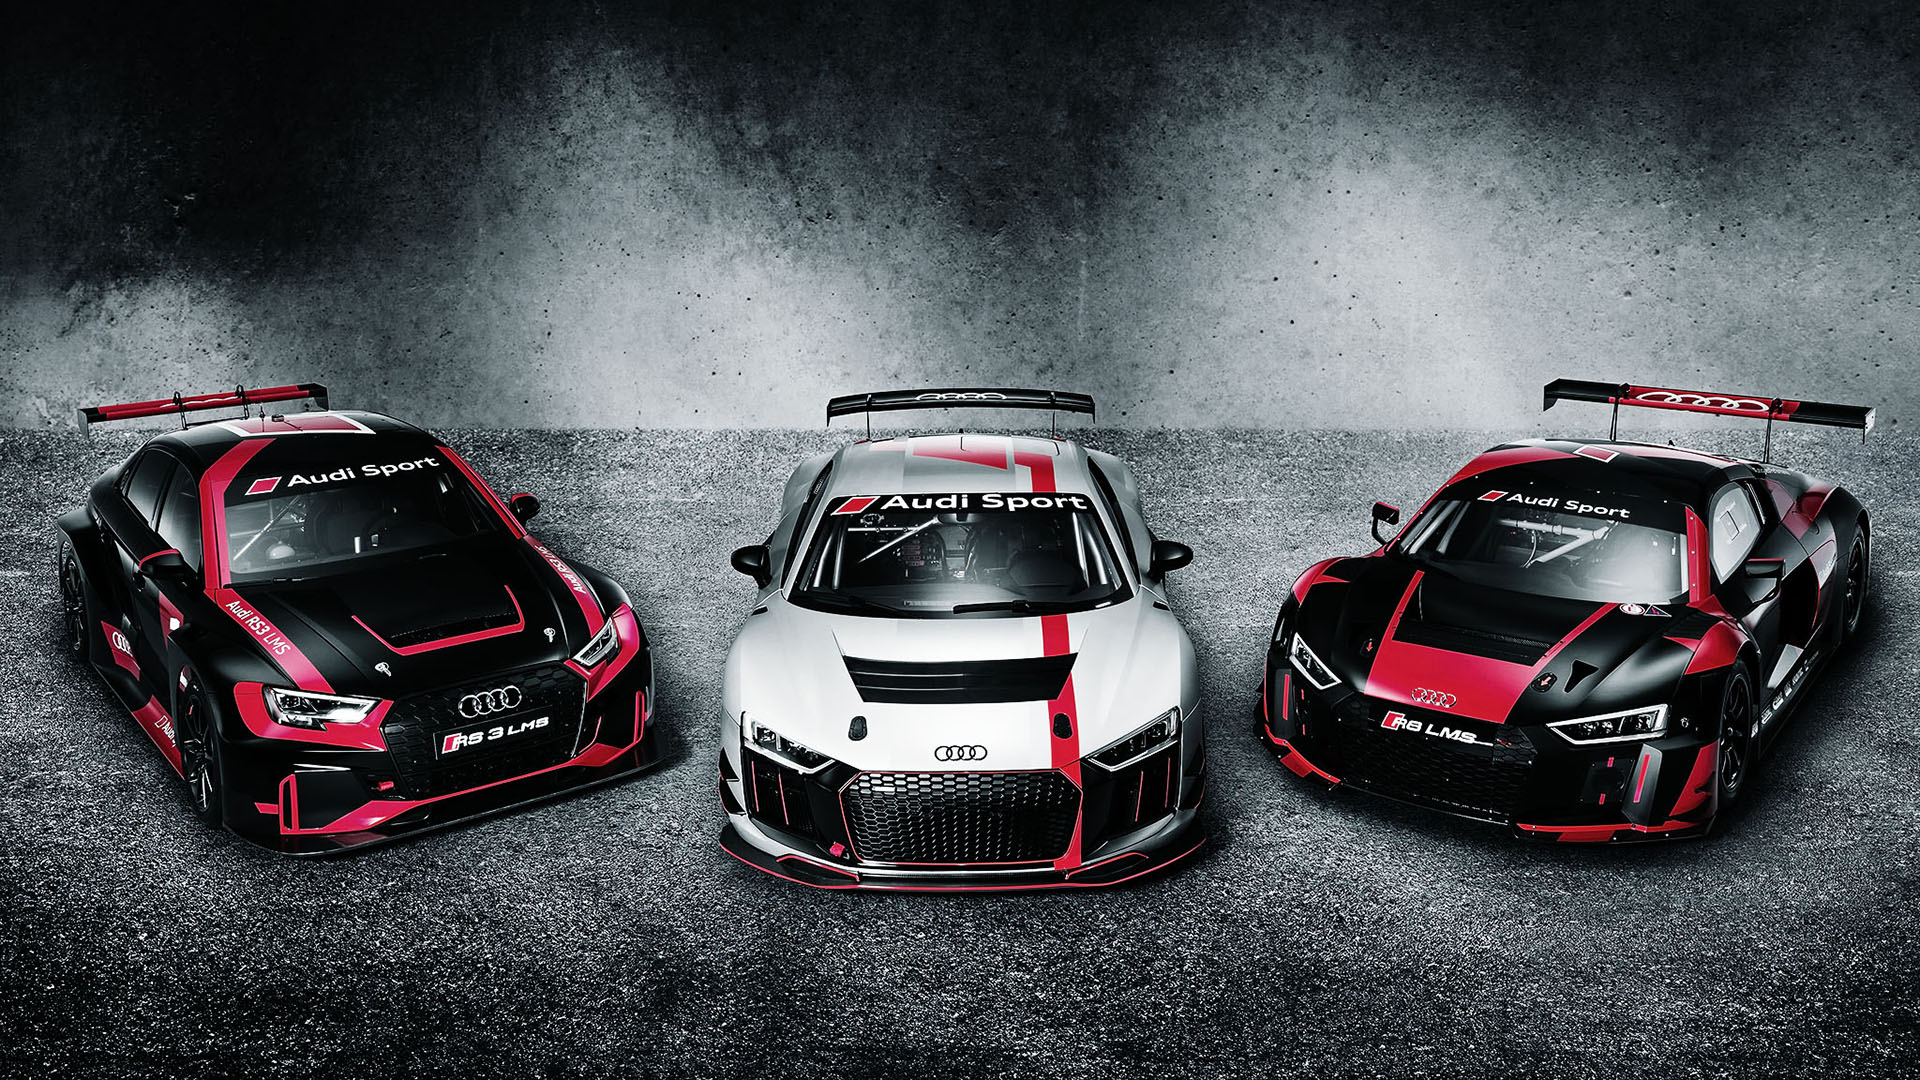 Successes of Audi Sport customer racing